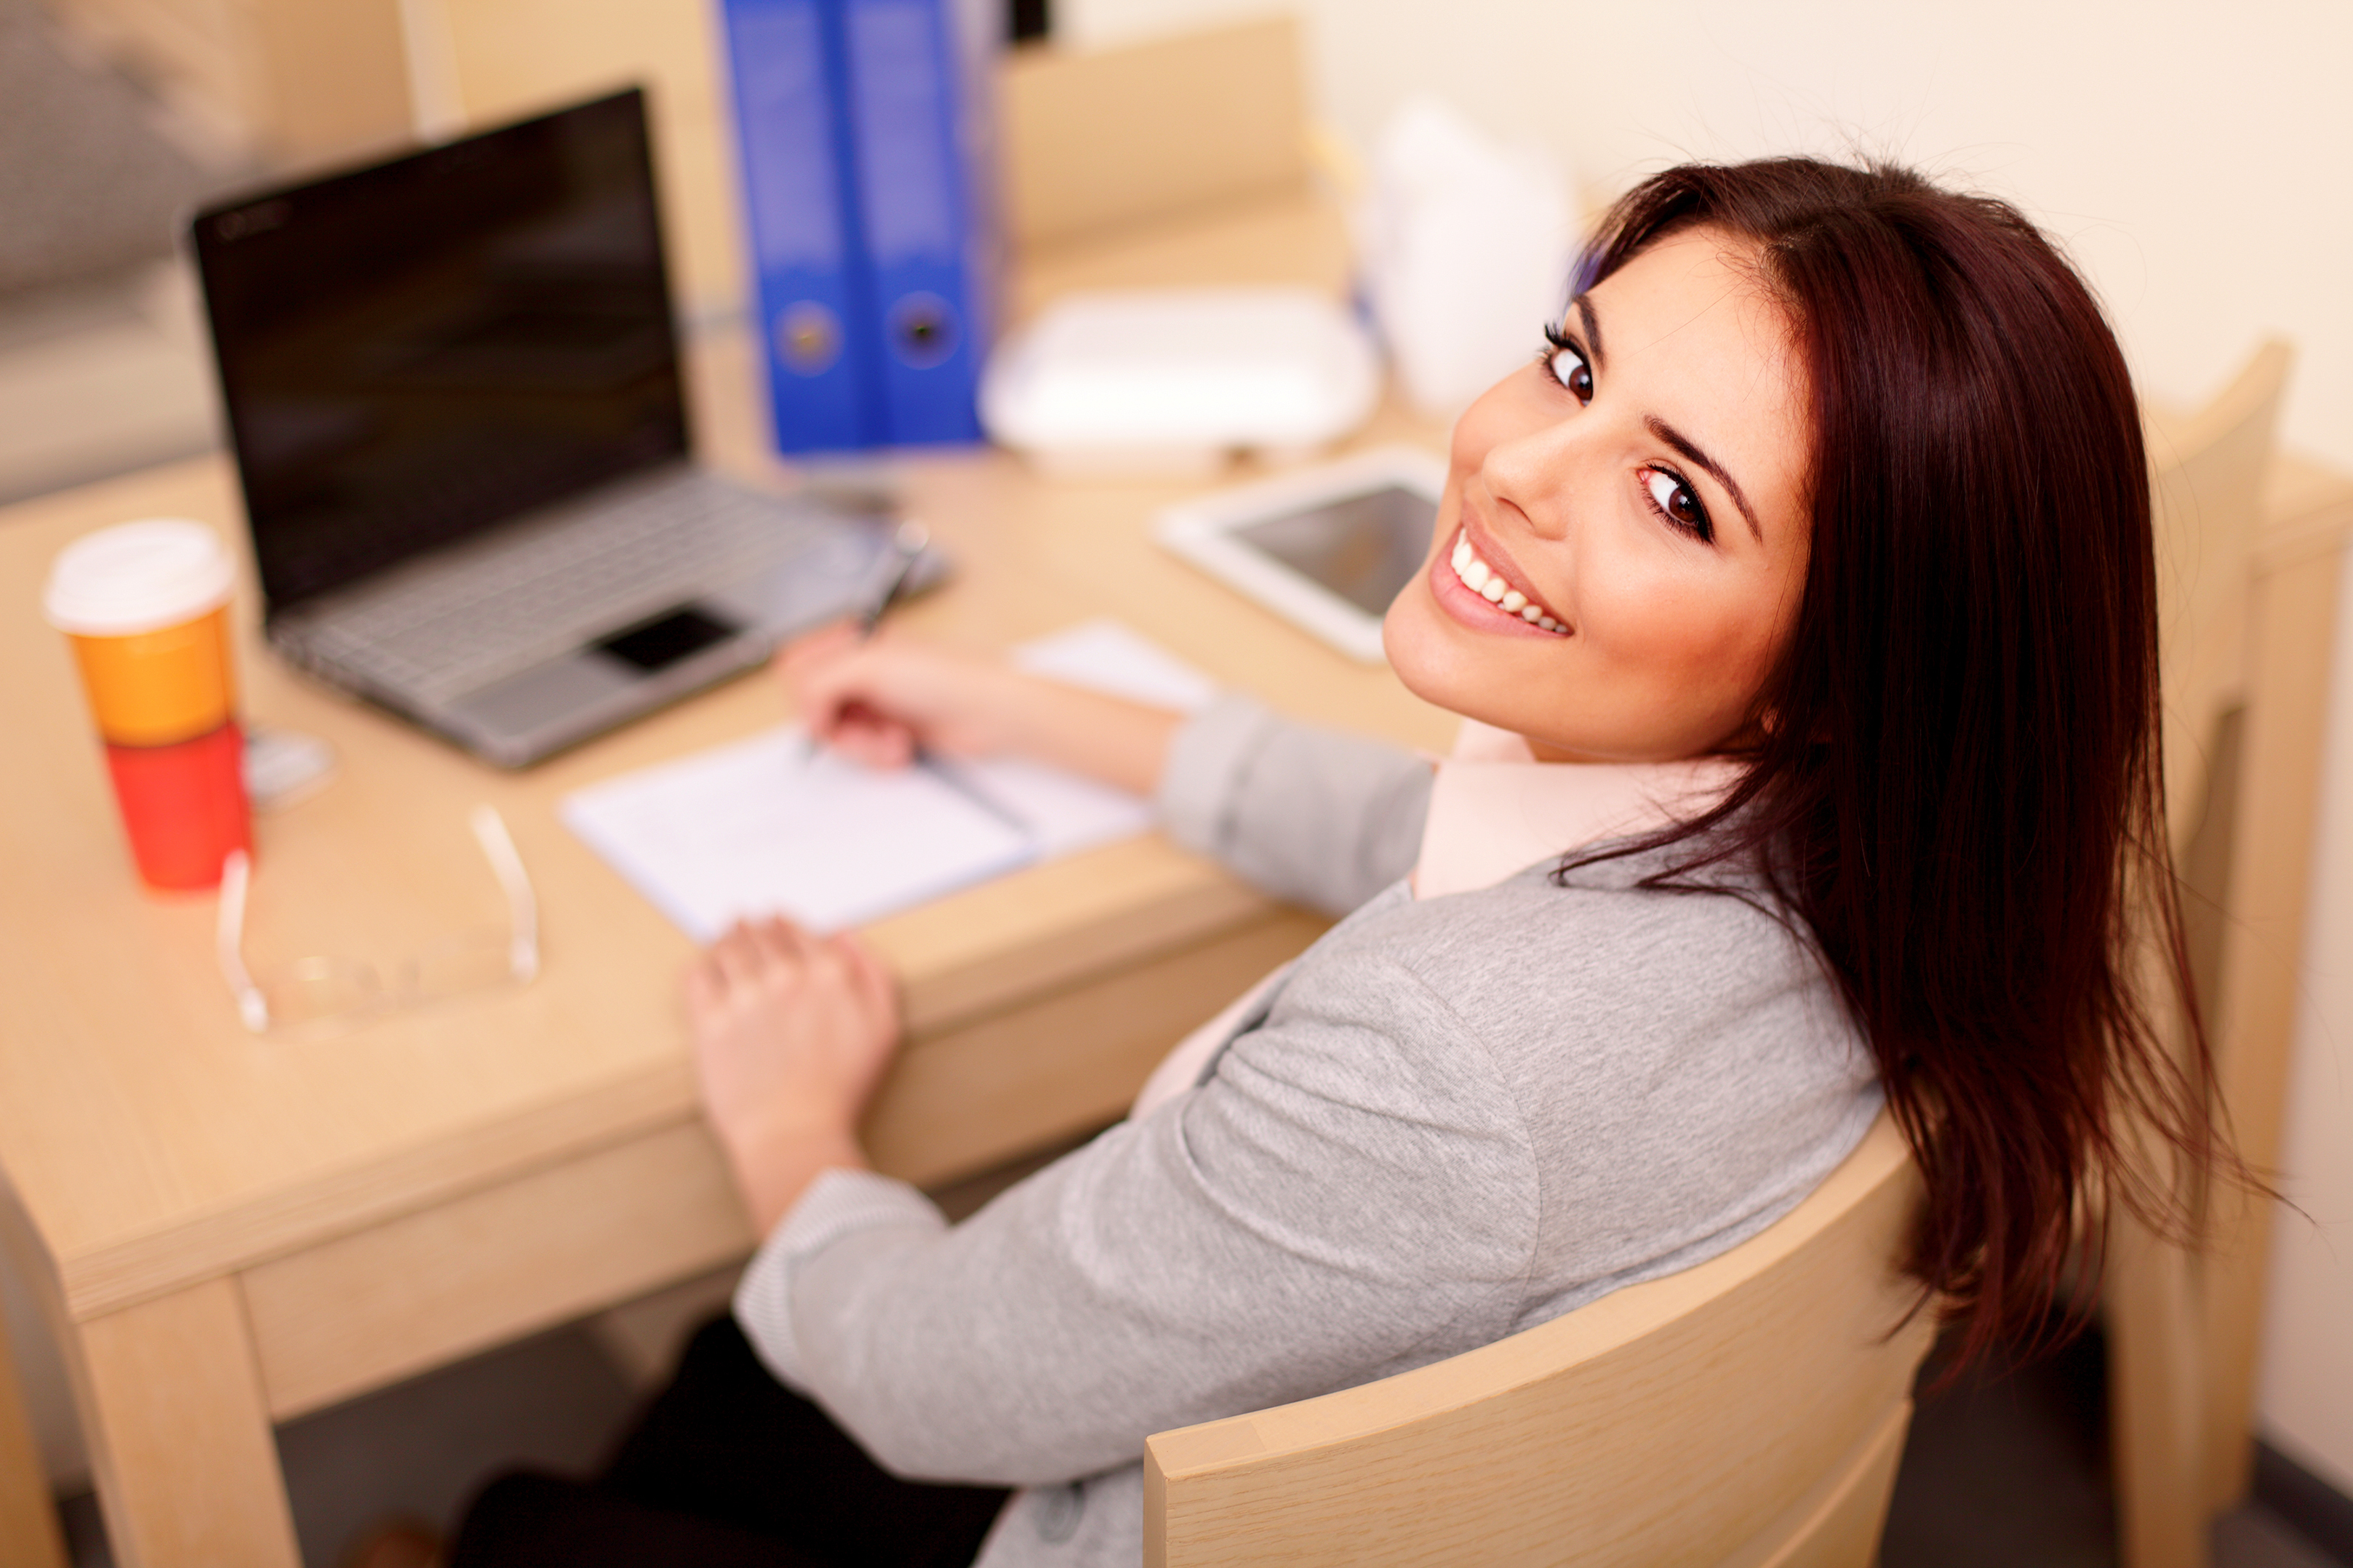 7 Pros of Working for a Small Company